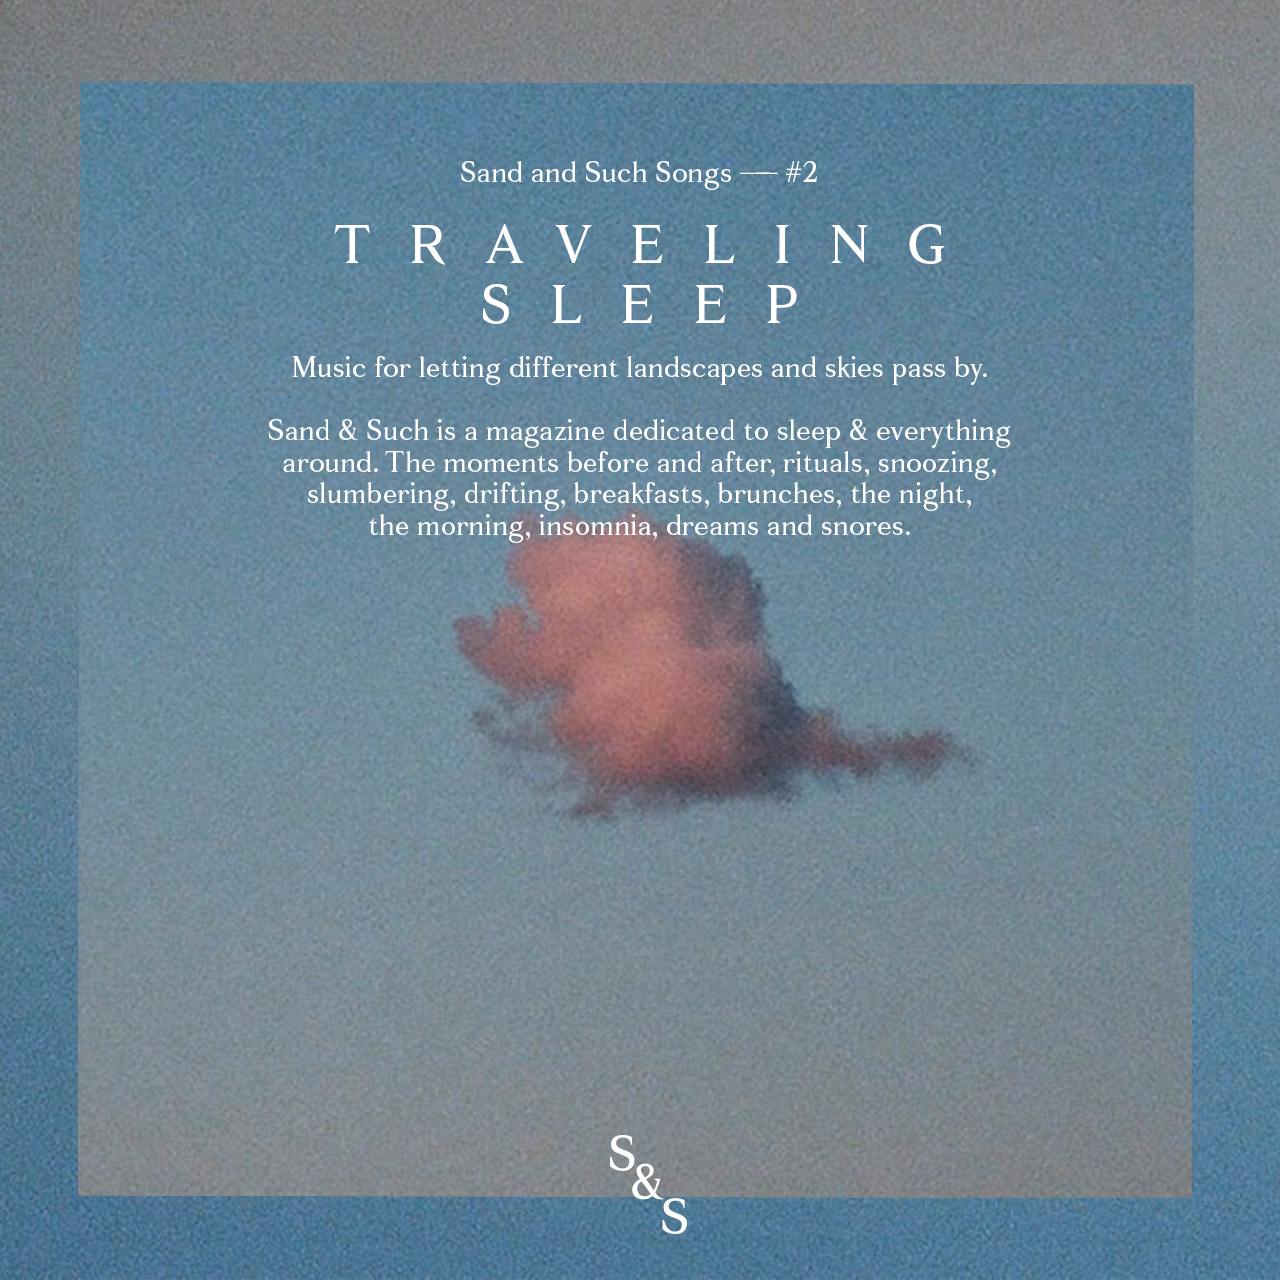 travellingsleep2